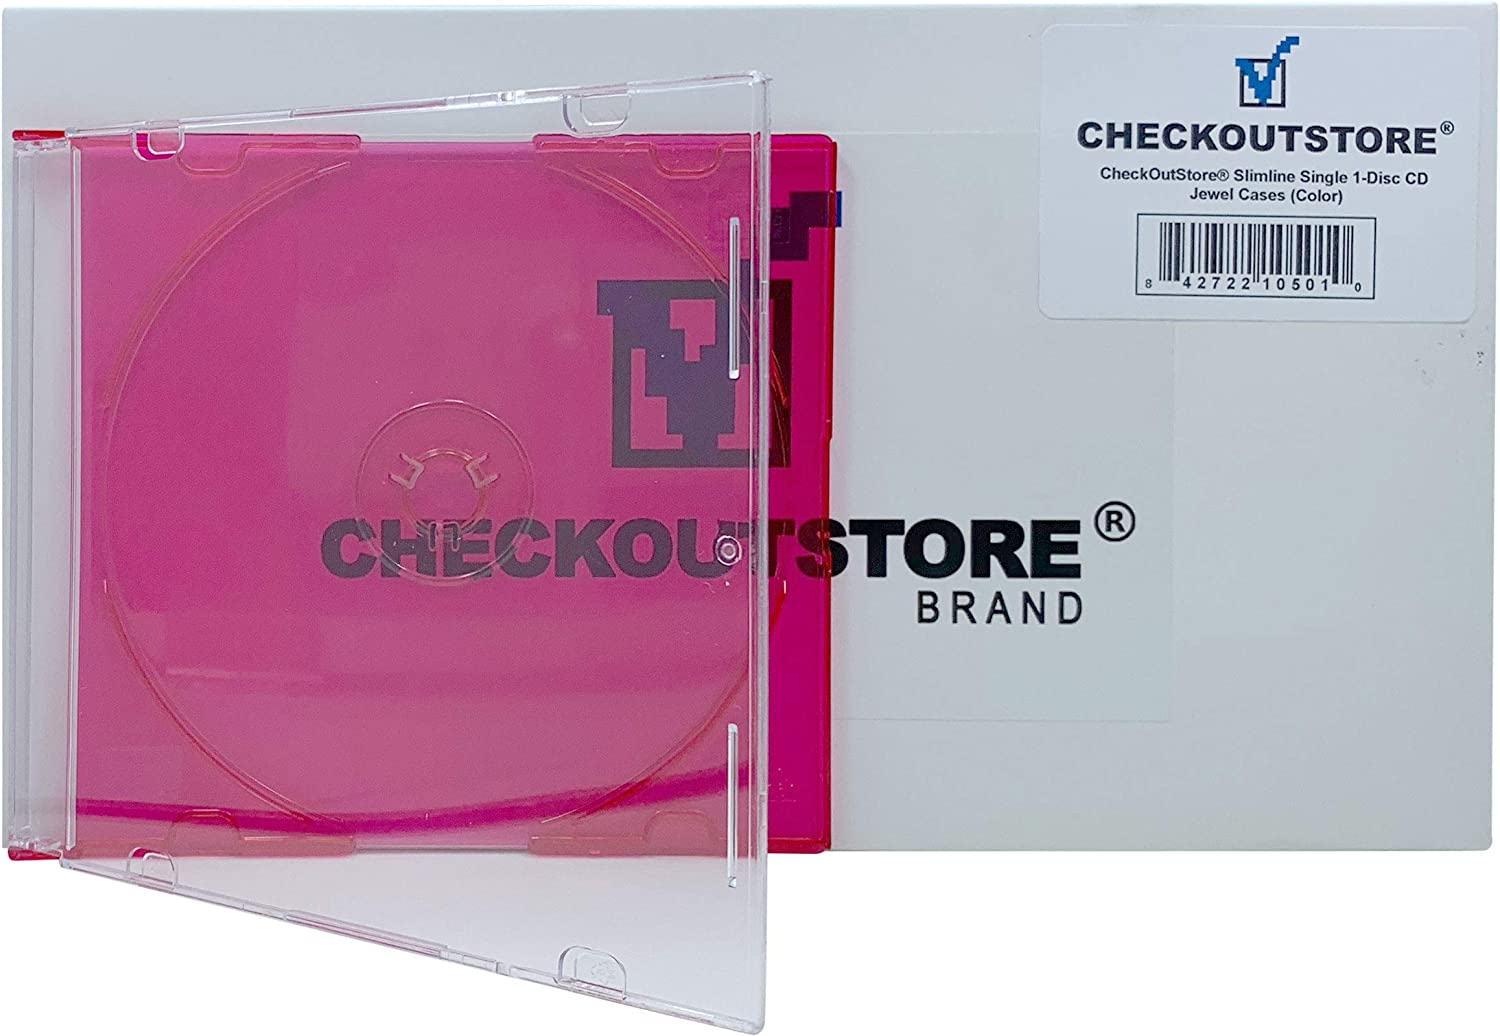 Red CheckOutStore Slimline Single 1-Disc Color CD Jewel Cases 50